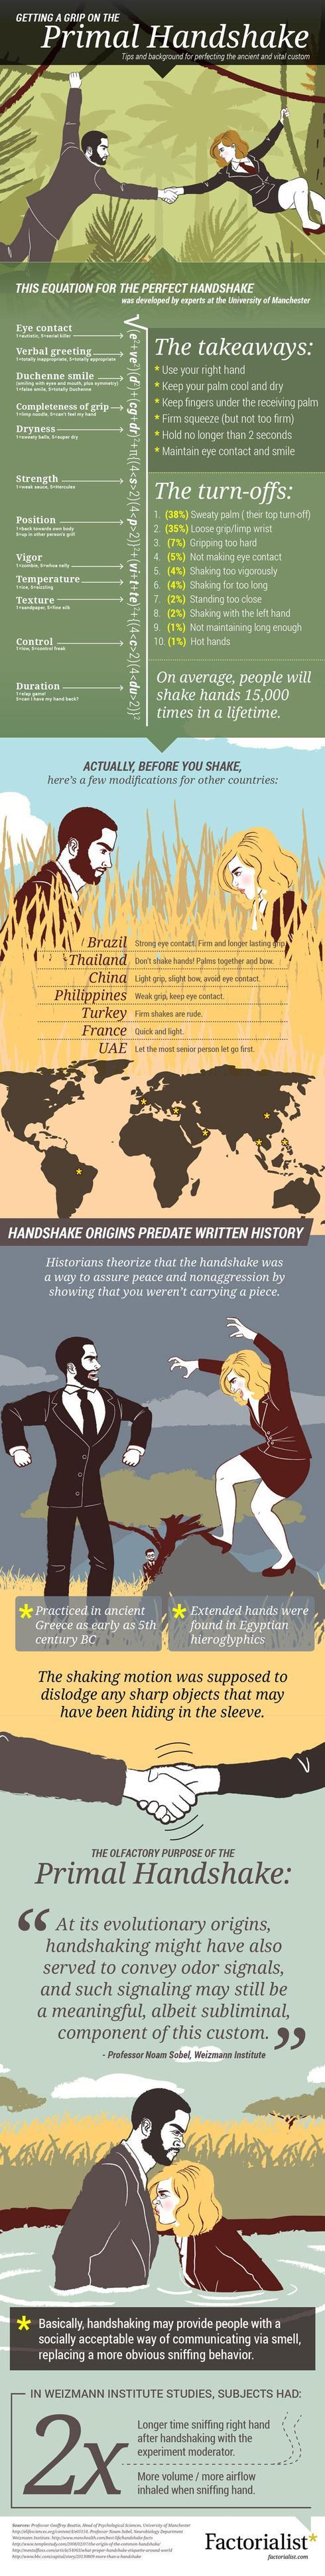 Along with your dress, body language, and demeanor, the hand... via Factorialist